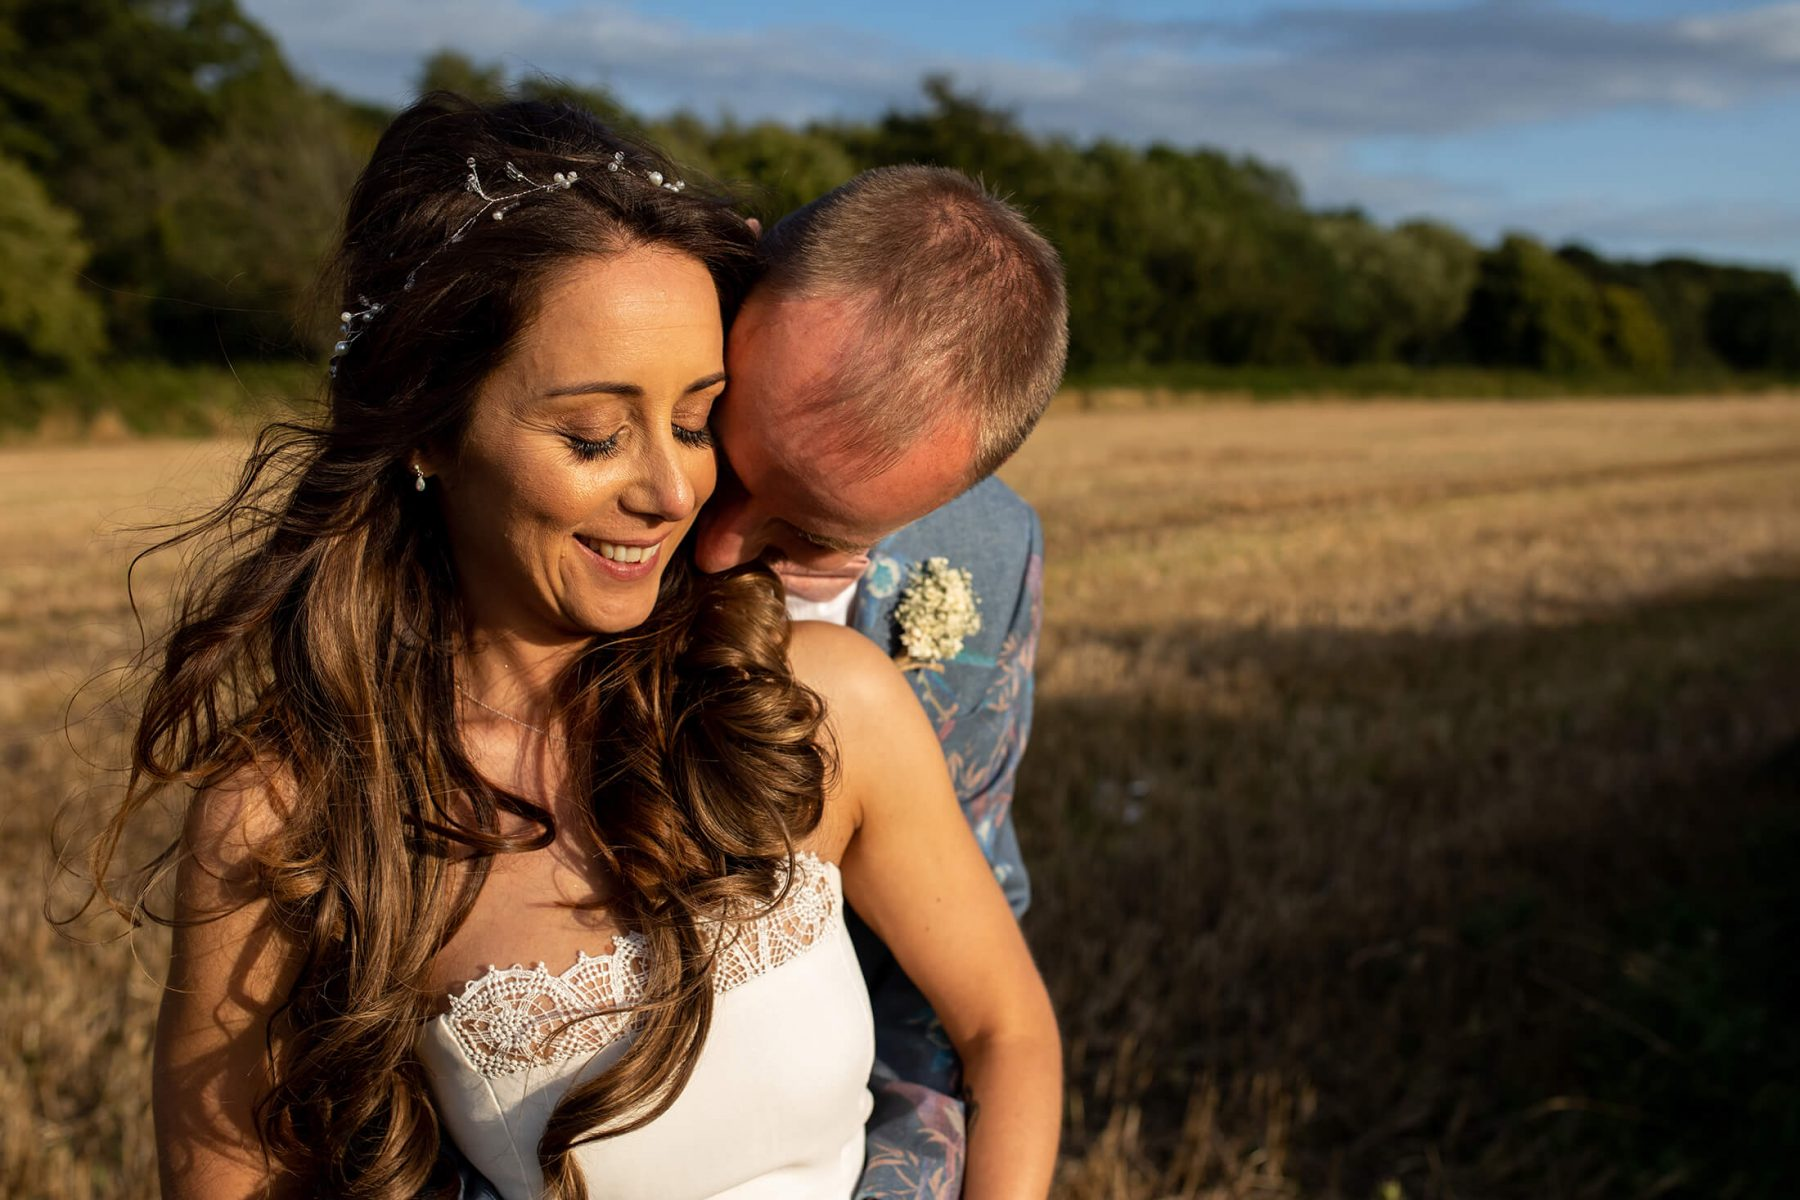 A portrait of a bride and groom in August evening sunlight.